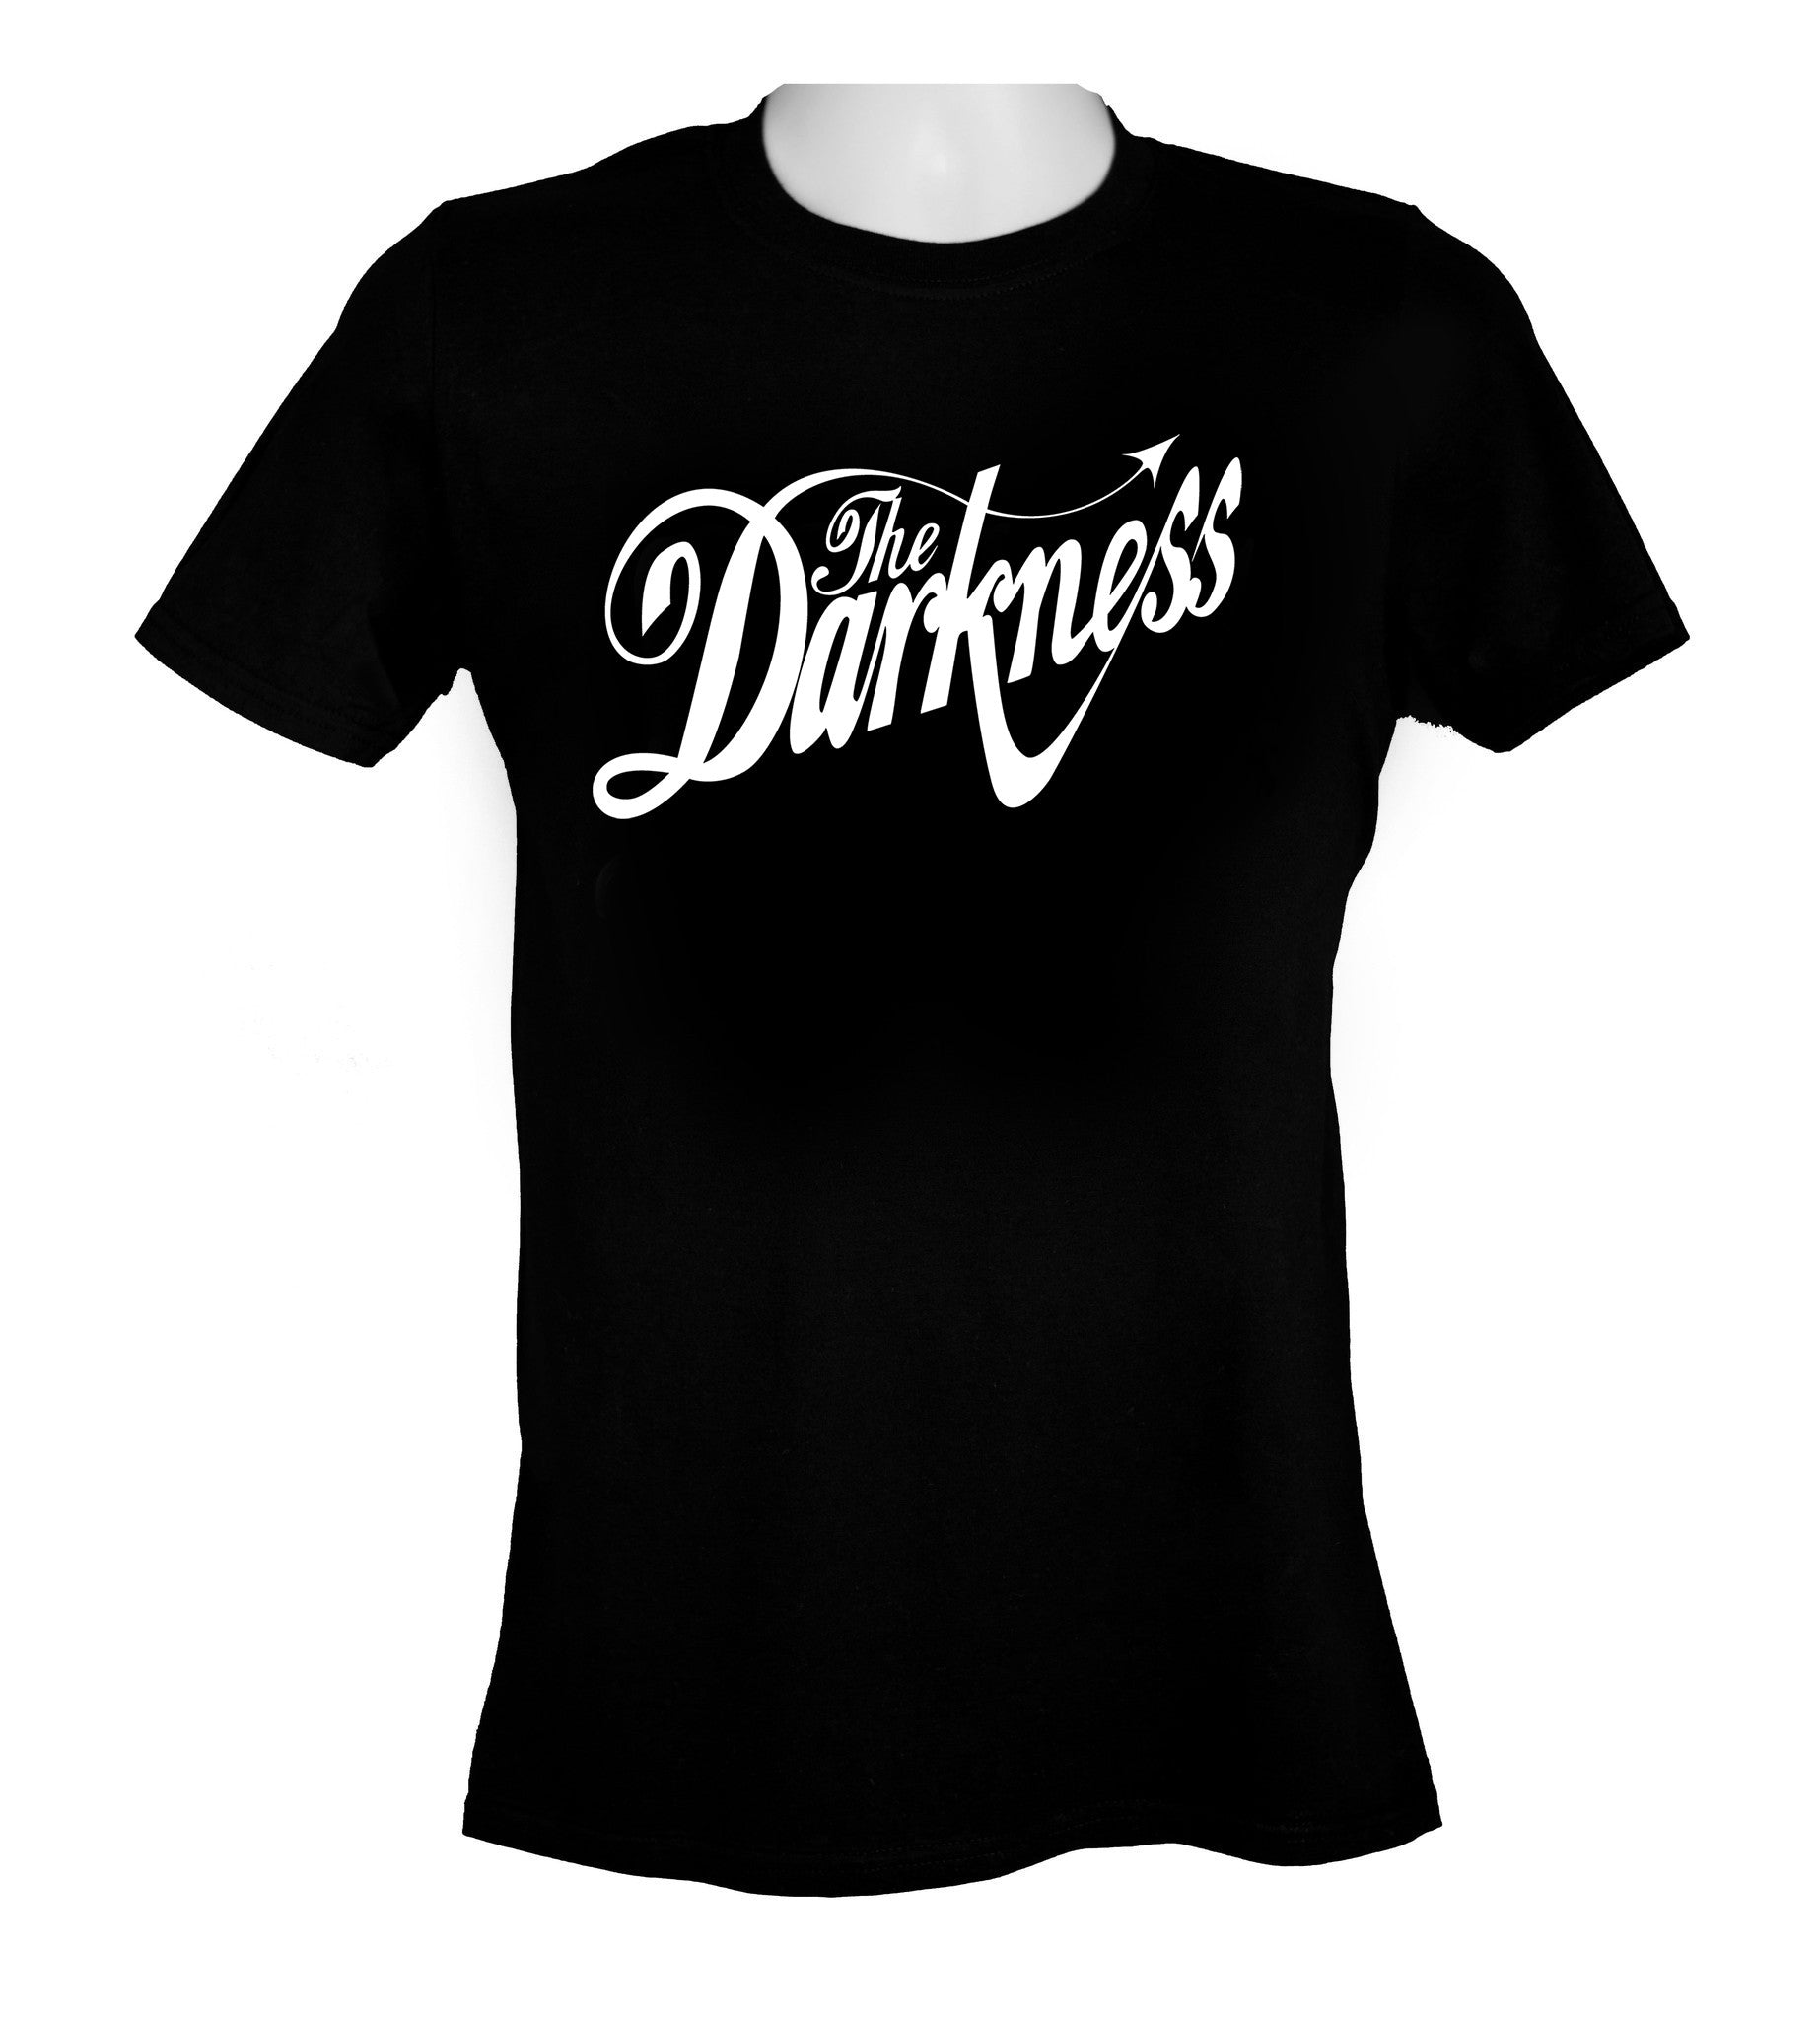 Classic original white logo on black T Shirt